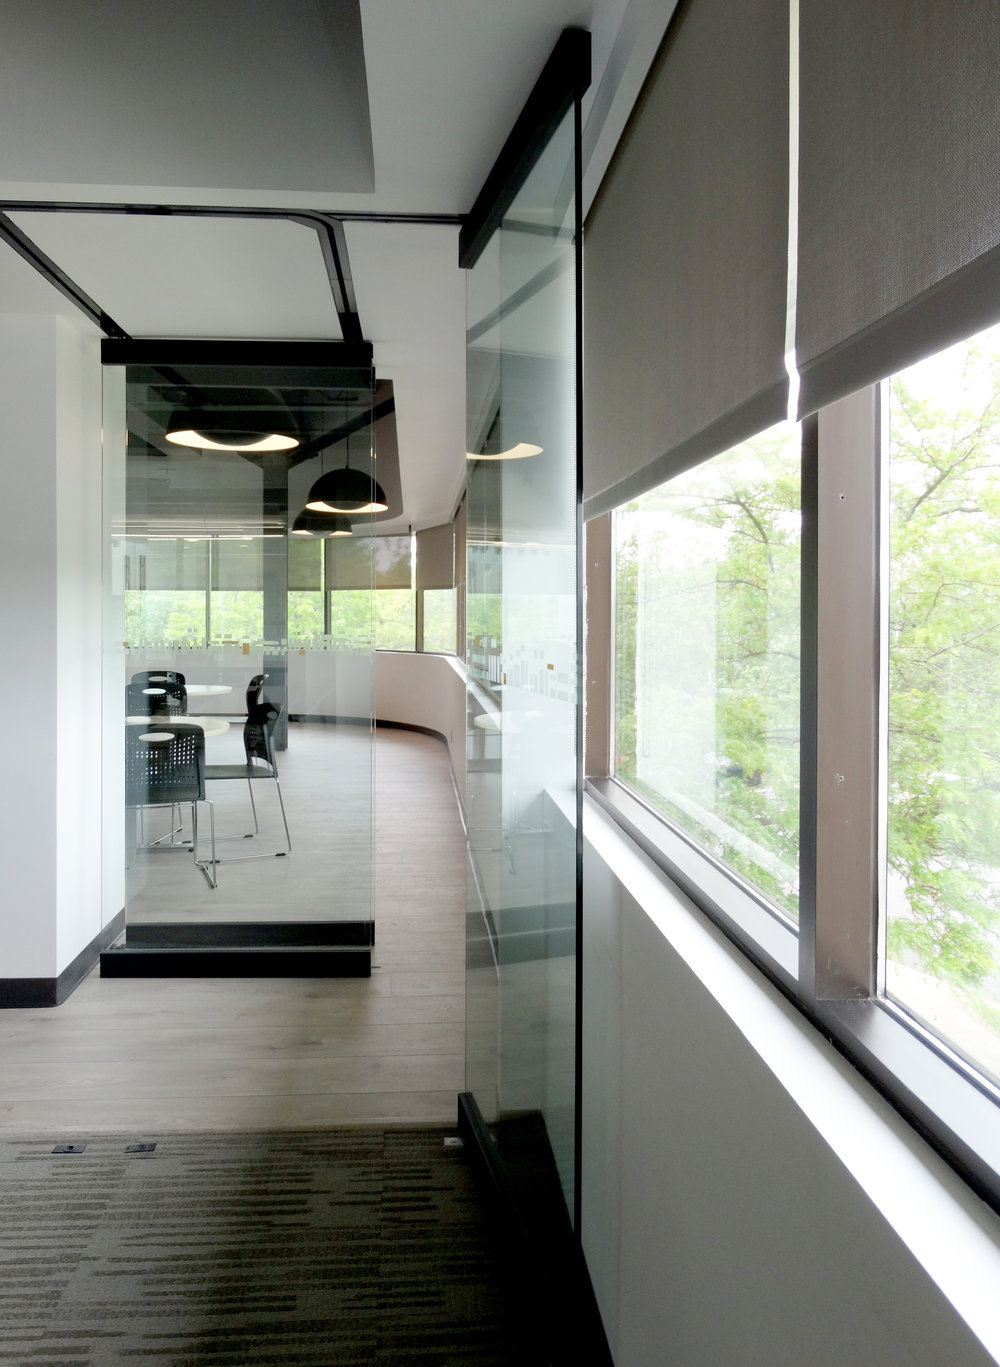 Illume Frameless Glass Sliding Stacking Wall - Spaceworks AI.jpg